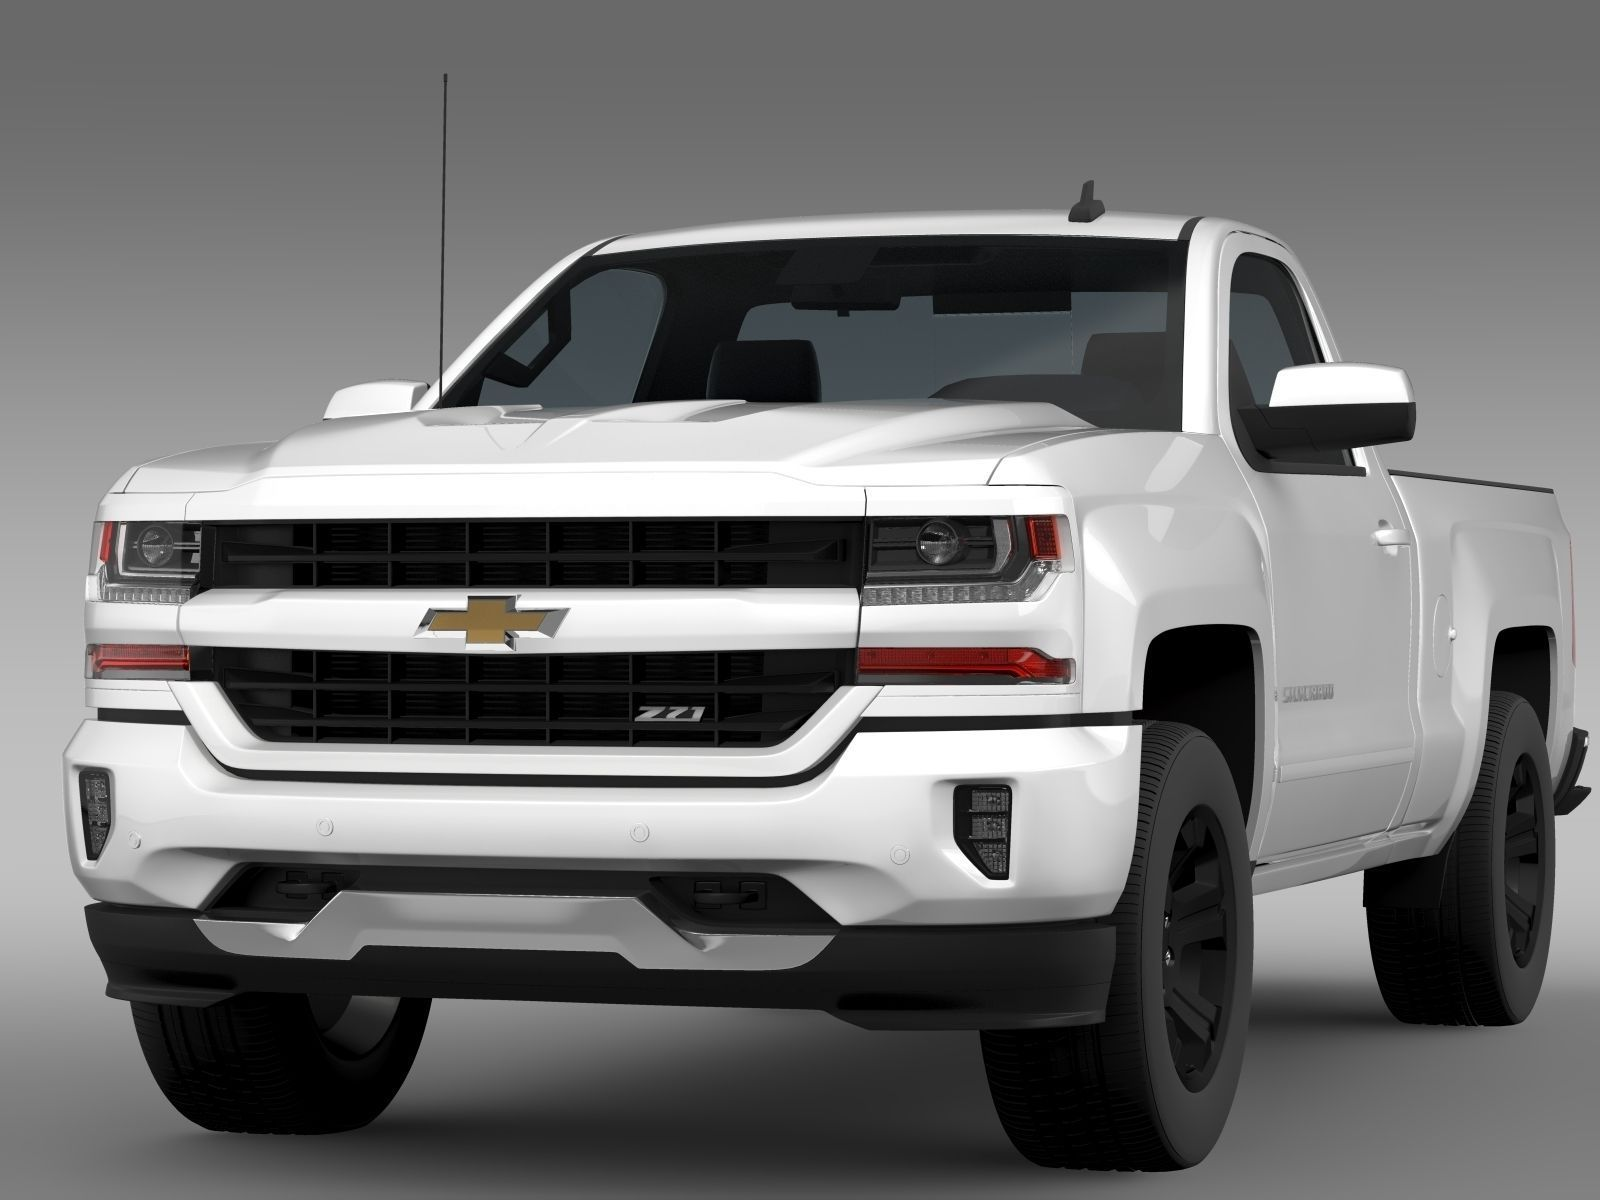 Chevrolet Silverado Lt Z71 Regular Cab Gmtk2 Standart Box 2017 Model